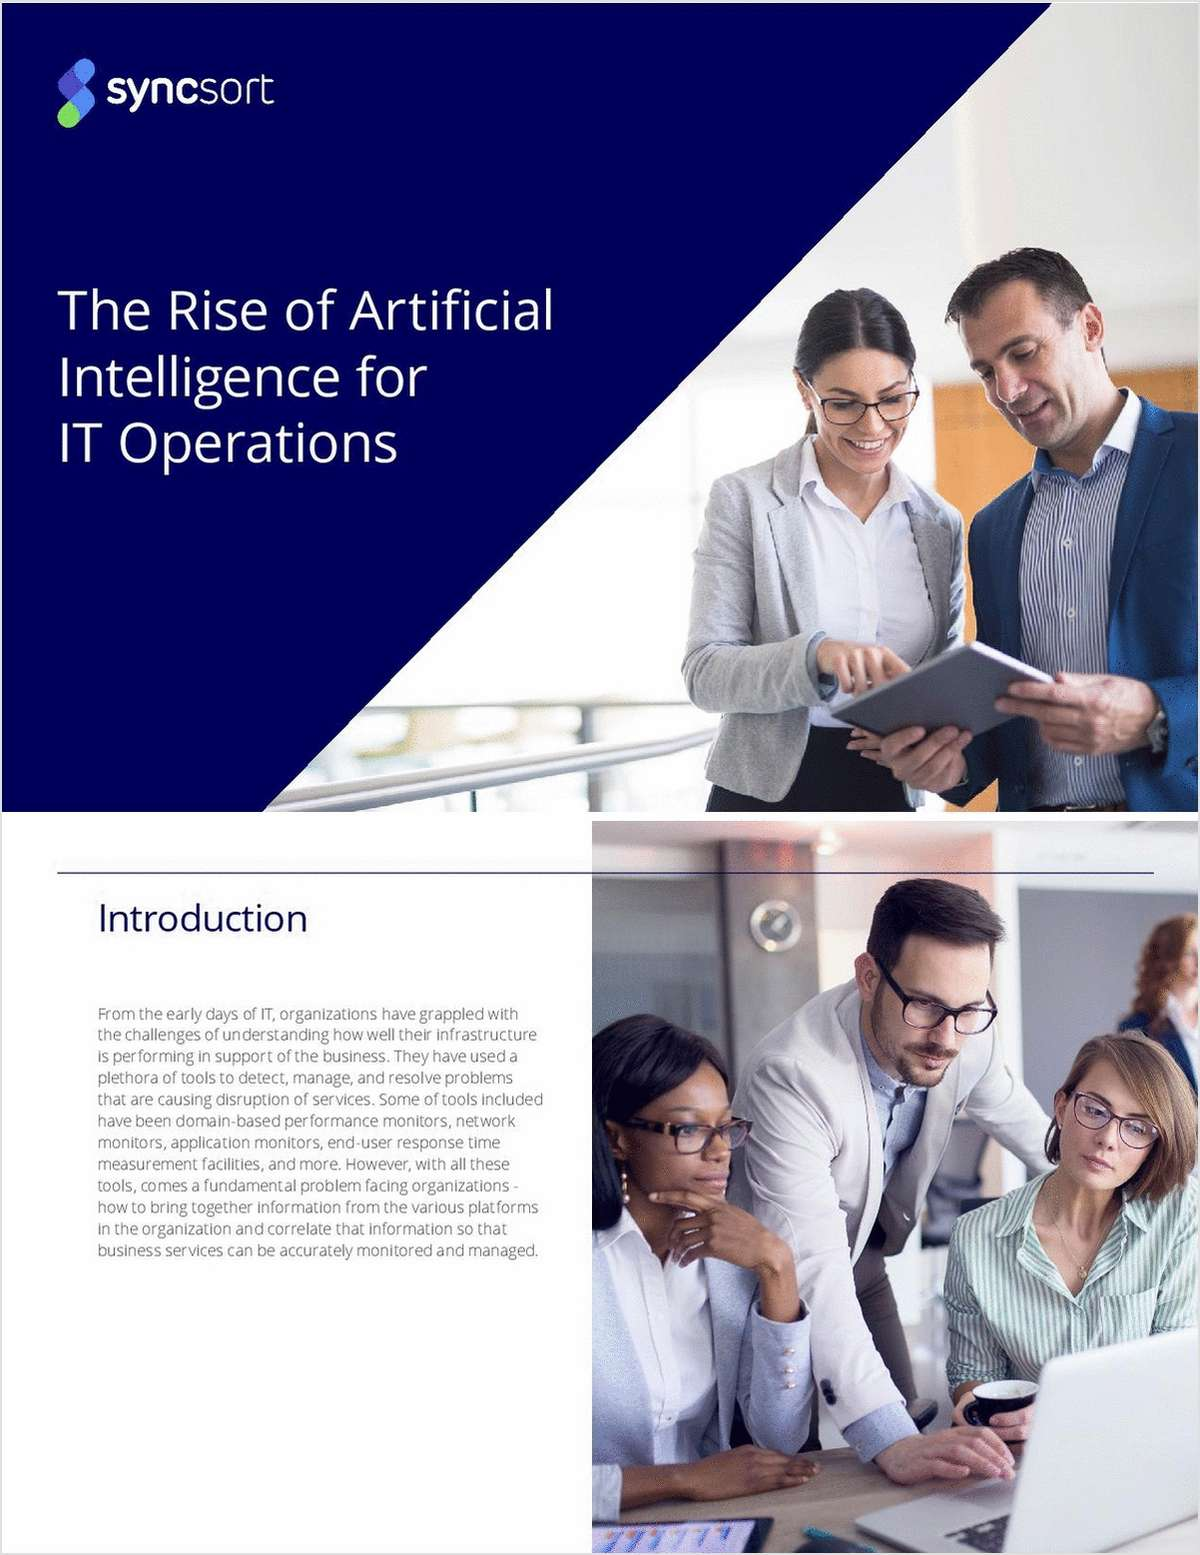 The Rise of Artificial Intelligence for IT Operations